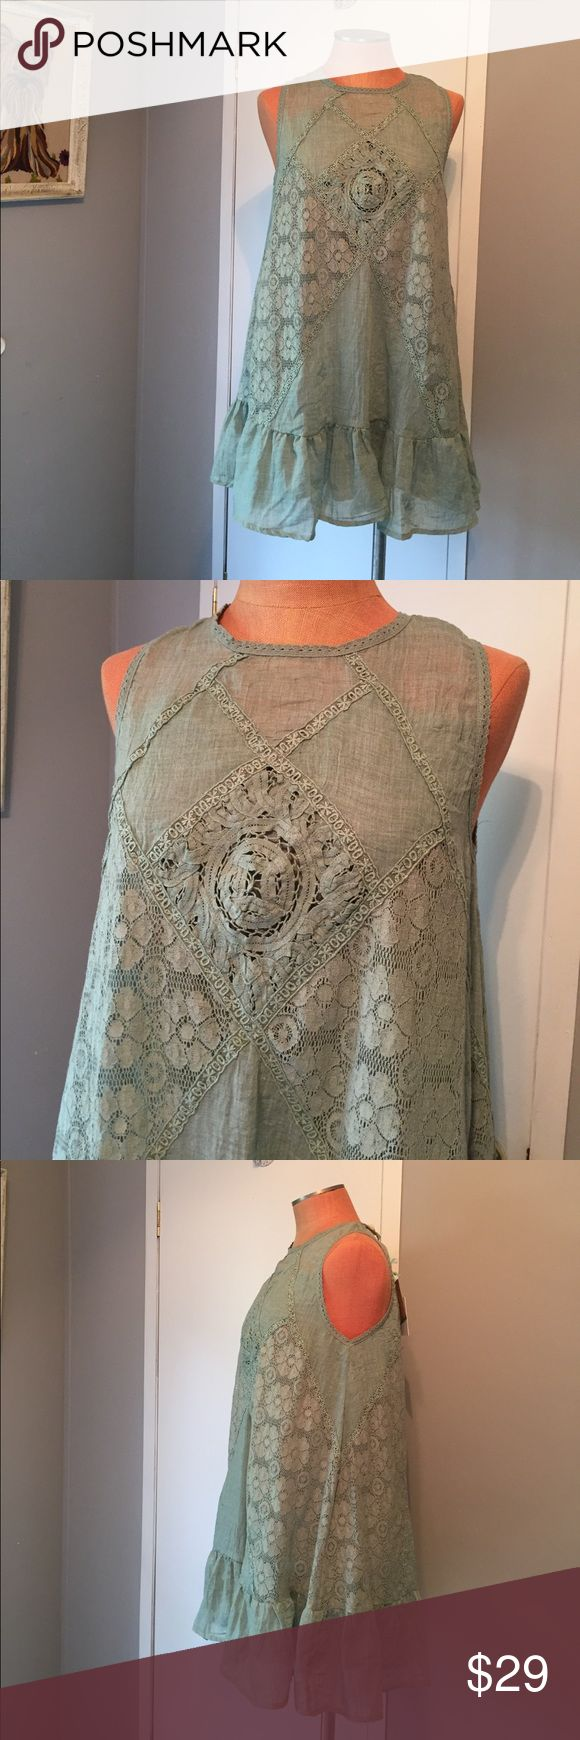 Umgee mint green tunic dress Wonderful green tunic dress by Umgee. Brand new with Tags attached. Labeled a Large, runs small this can fit a size 6-8 perfect. Umgee Tops Tunics